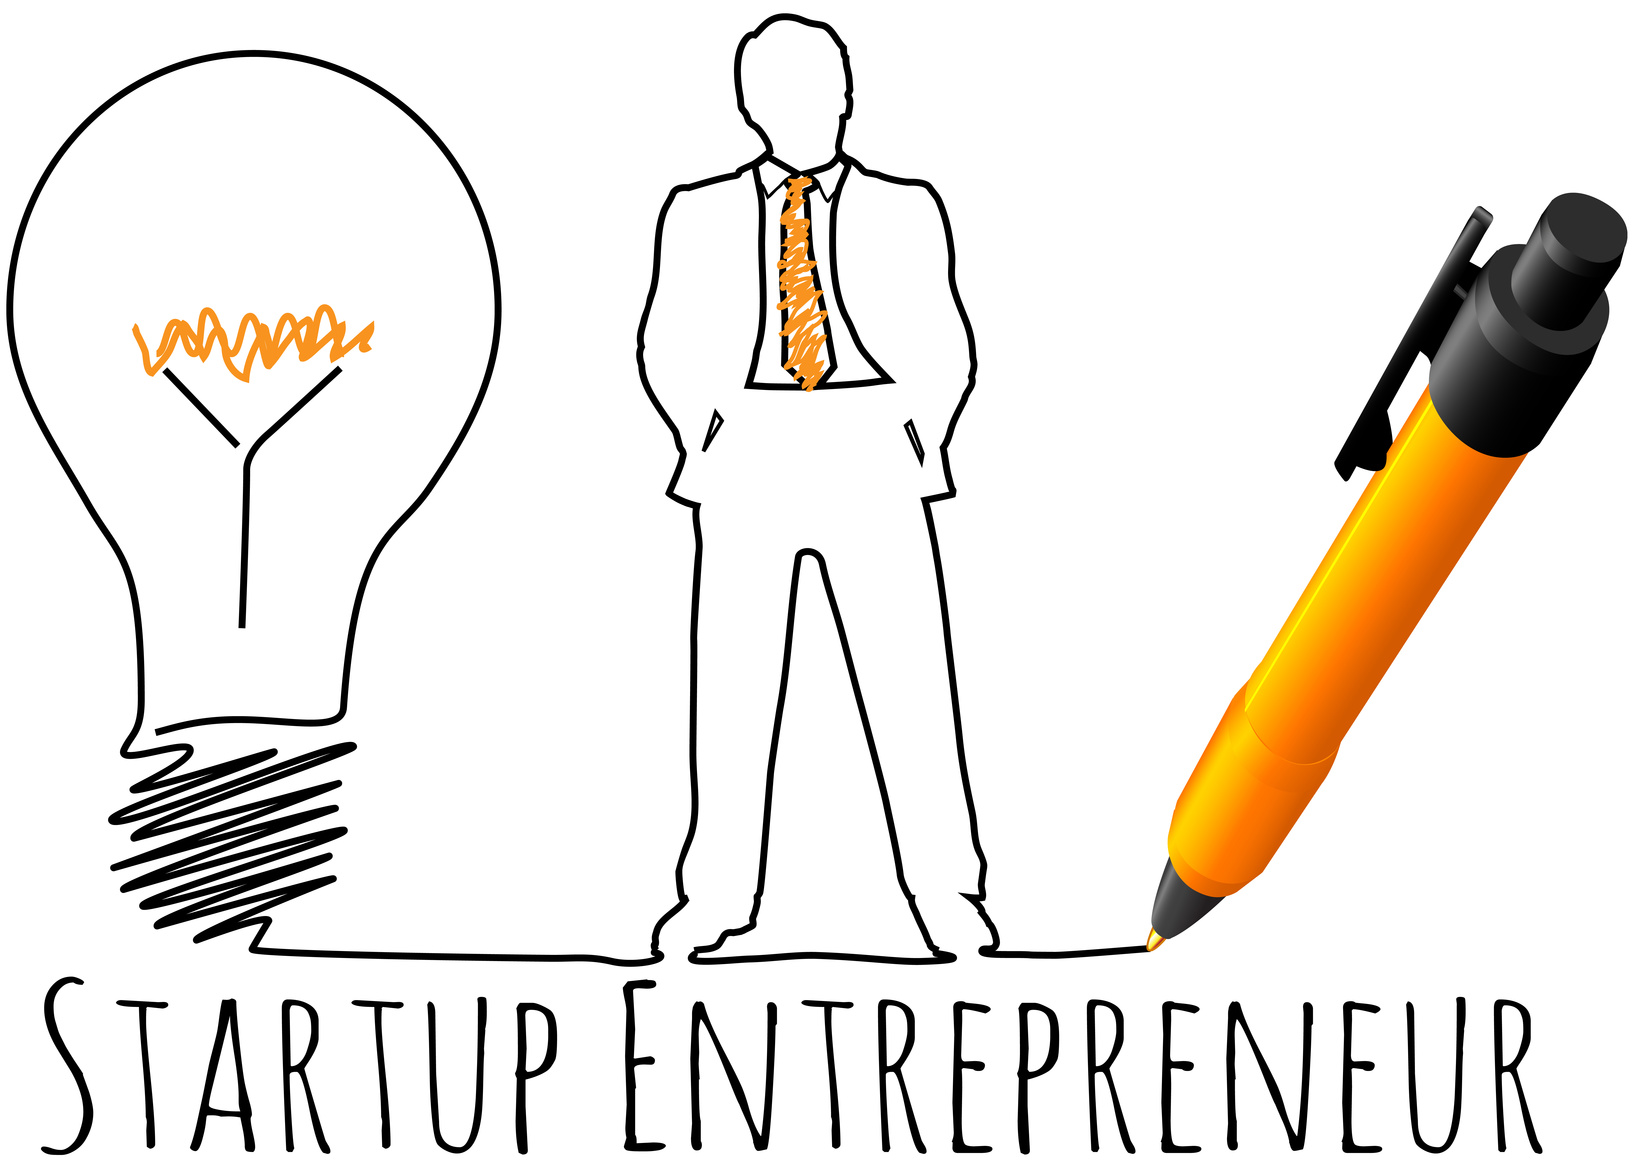 entrepreneurship and intrapreneurship Key words: entrepreneurial intentions, intrapreneurship, corporate entrepreneurship introduction entrepreneurial behaviour is important for national employment, the growth of national economies and global competitiveness.